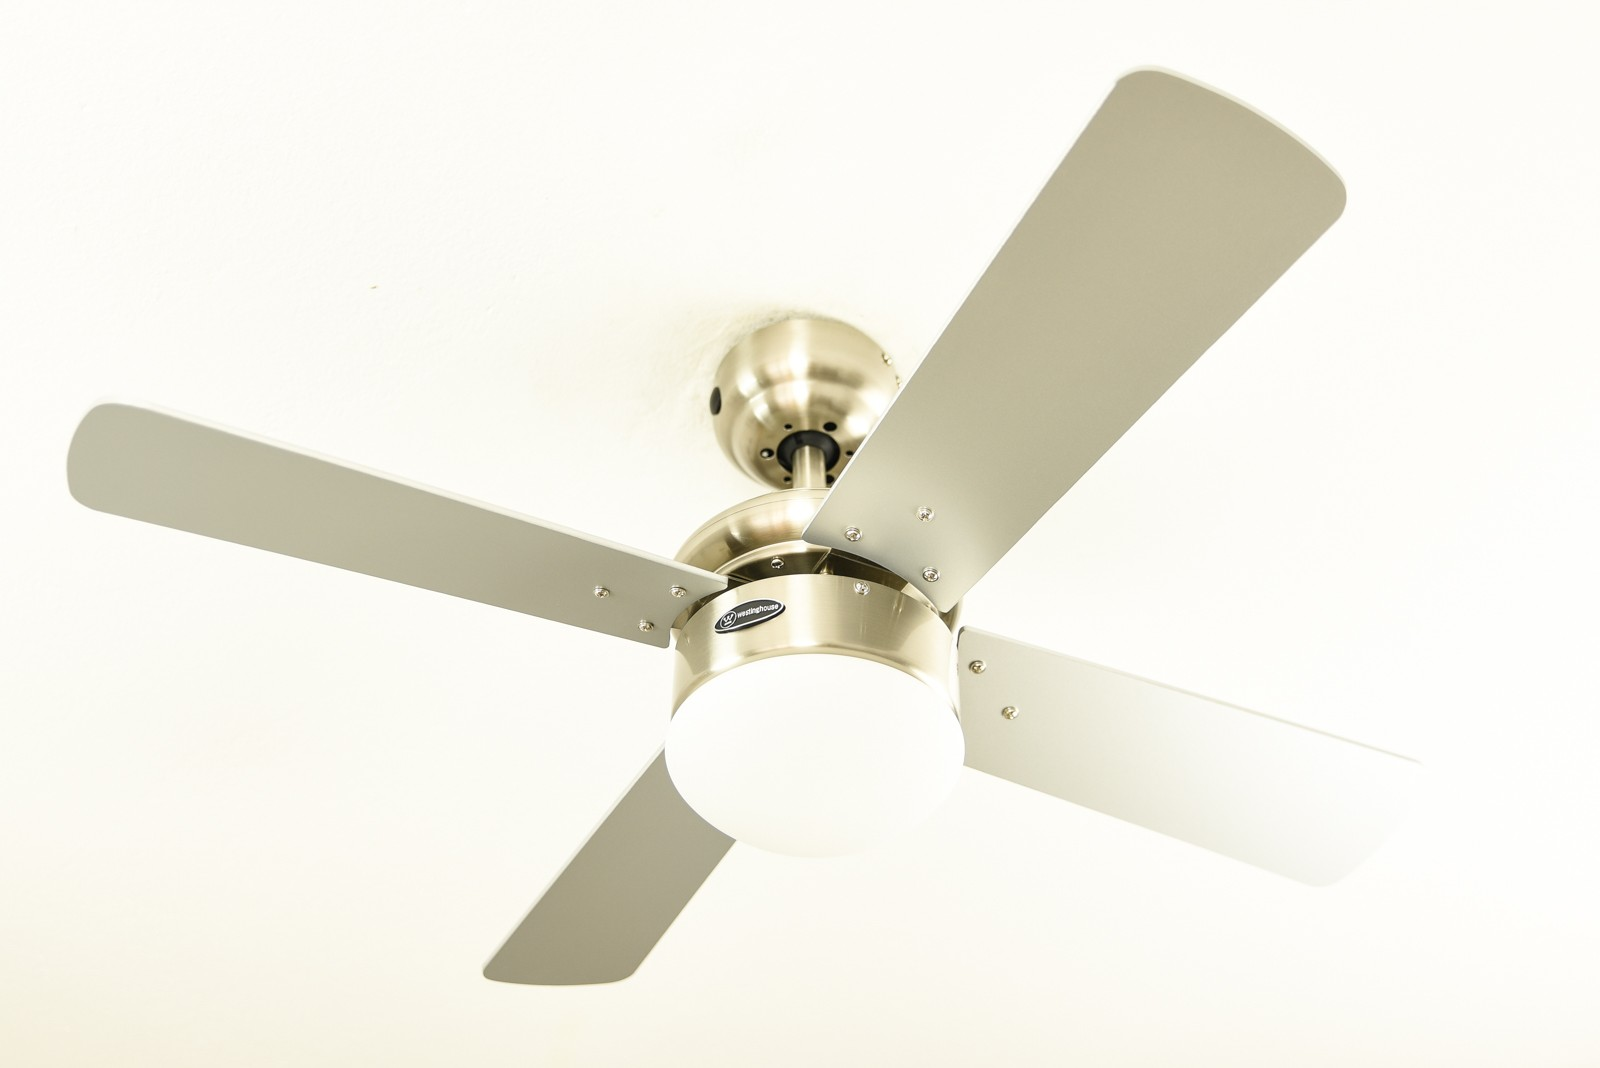 Westinghouse Ceiling Fan Colosseum Brushed Nickel Including Dimmable Led Light And Remote Control Bild 5